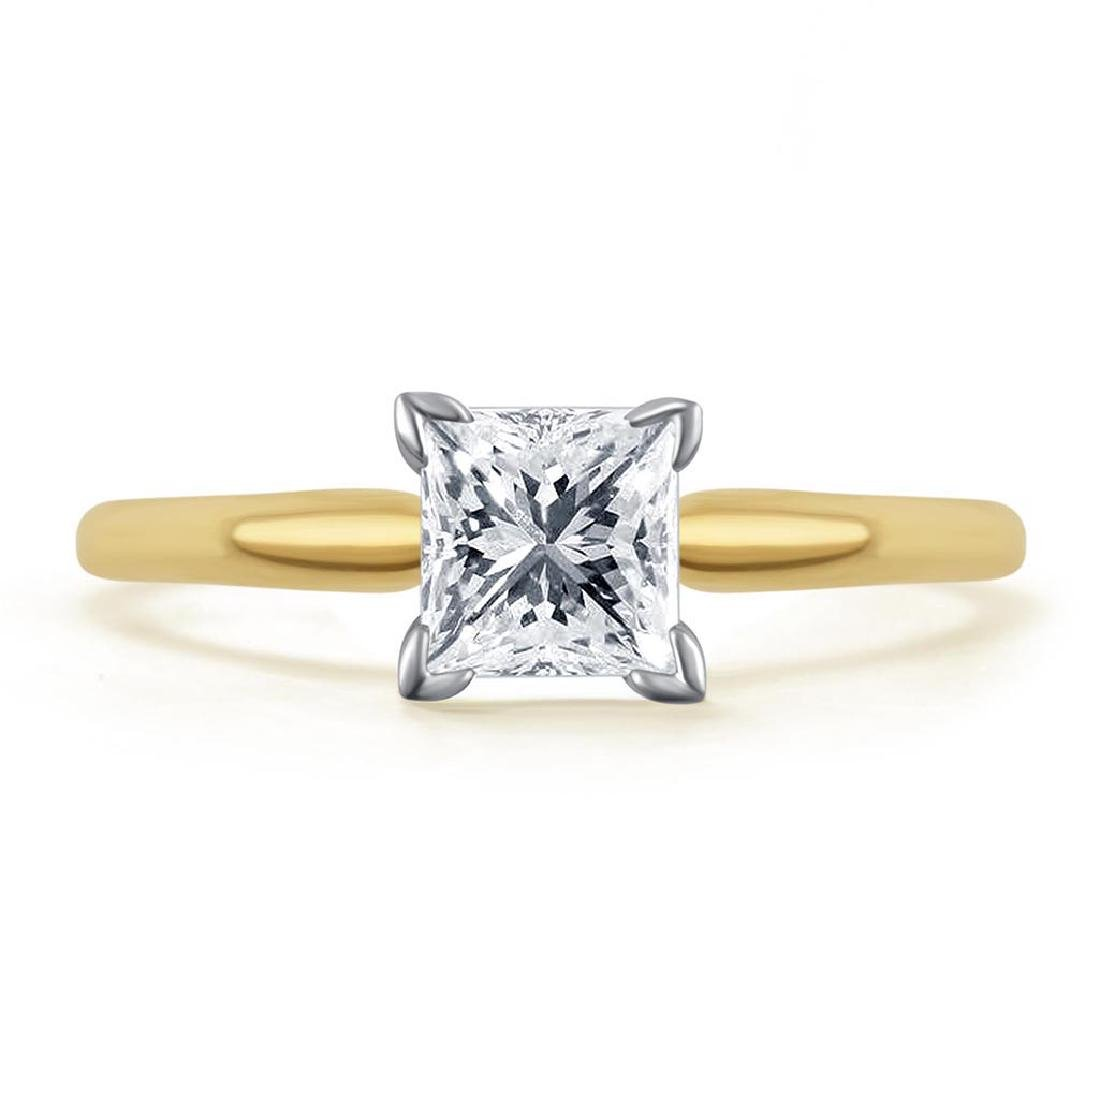 CERTIFIED 0.71 CTW PRINCESS D/SI1 SOLITAIRE RING IN 14K